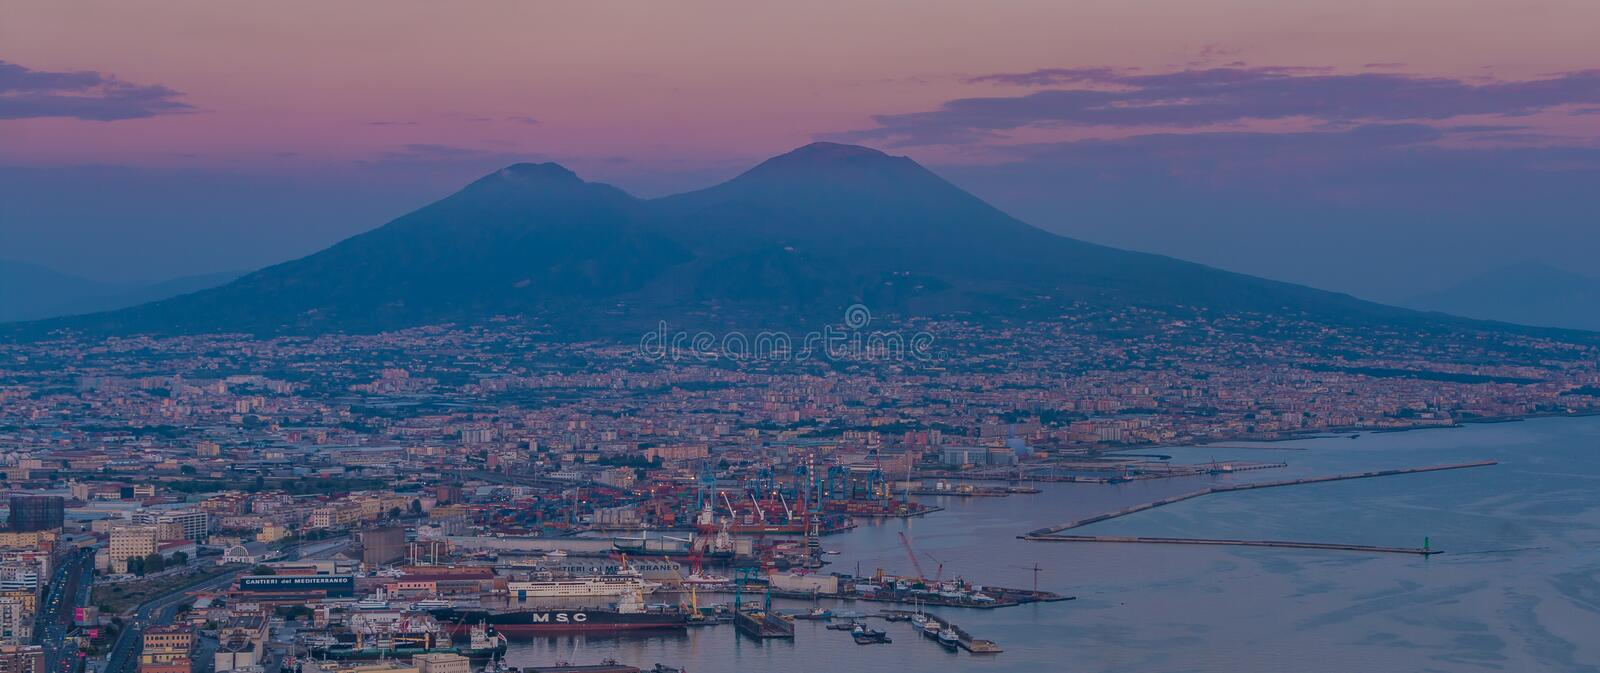 Mount Vesuvius II. A picture of Mount Vesuvius and the port area of Naples, at sunset royalty free stock image